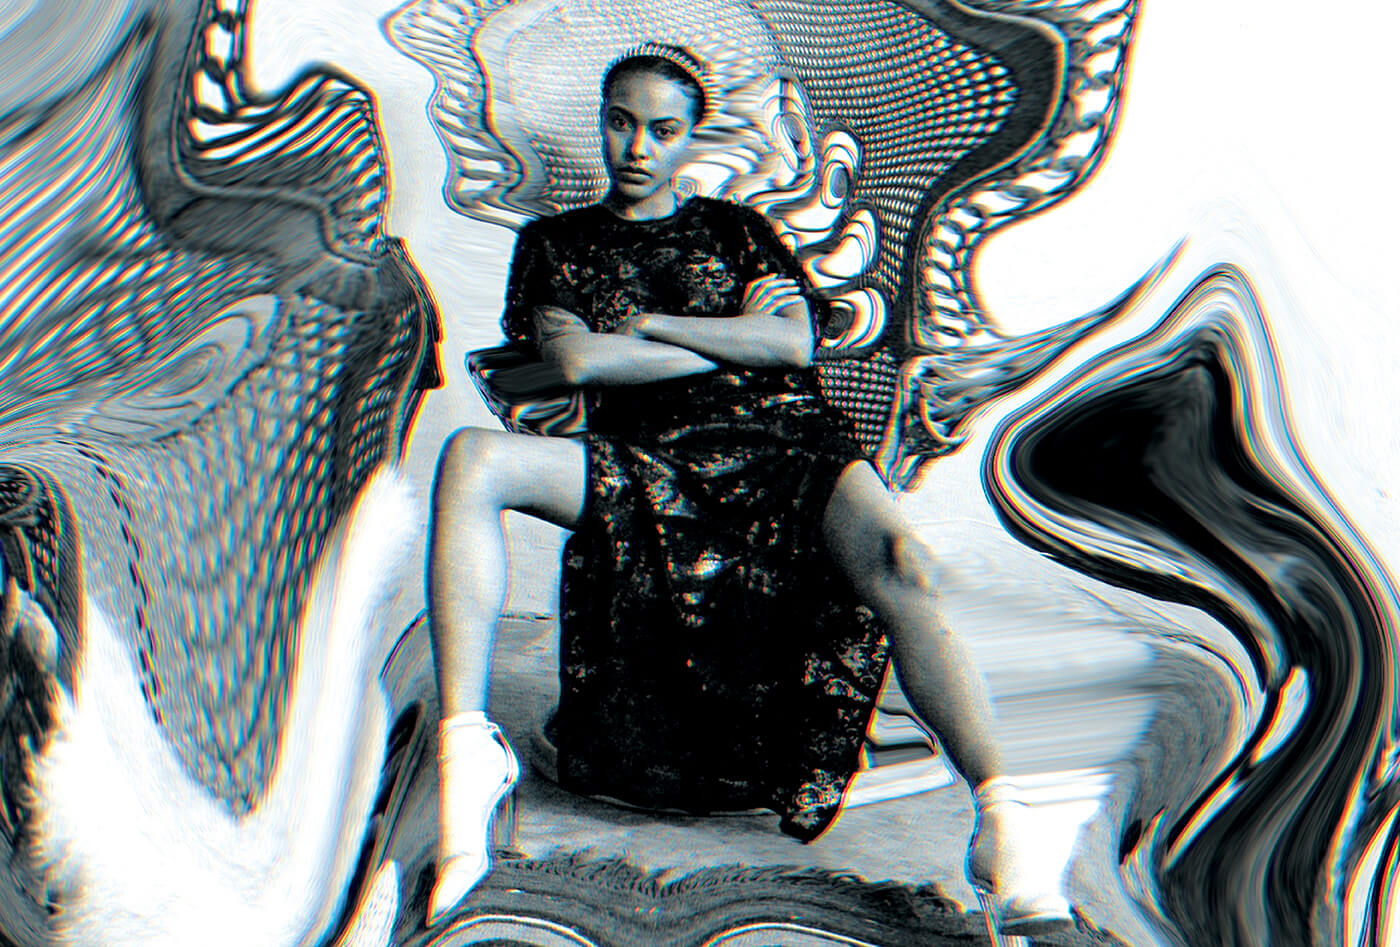 black and white campaign image of woman that has been glitched